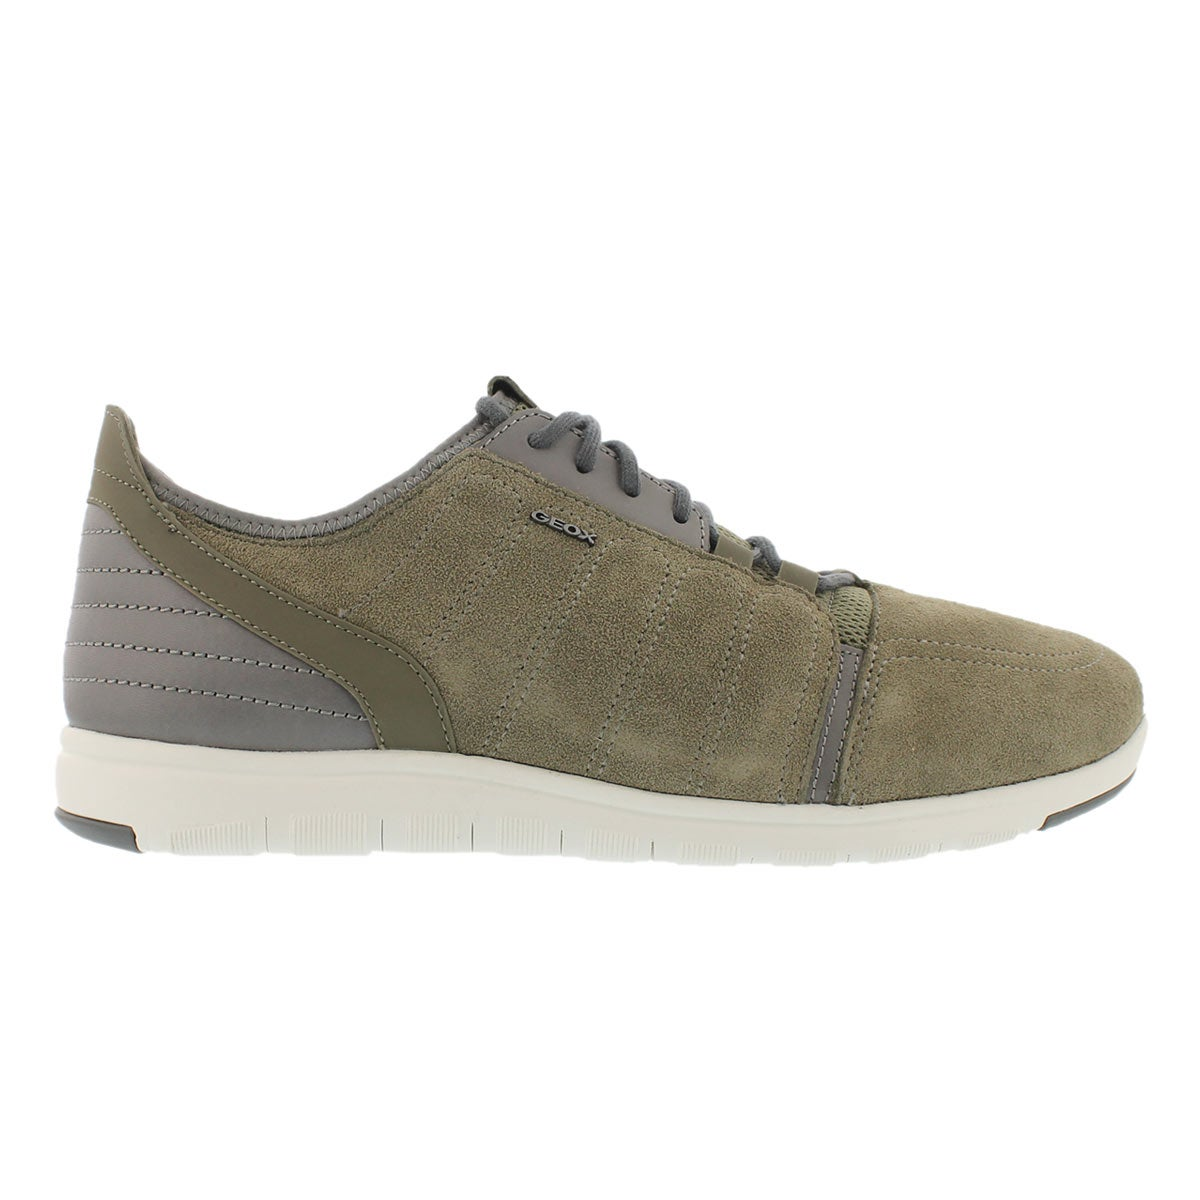 Mns Xunday 2Fit sage/stone laceup runner